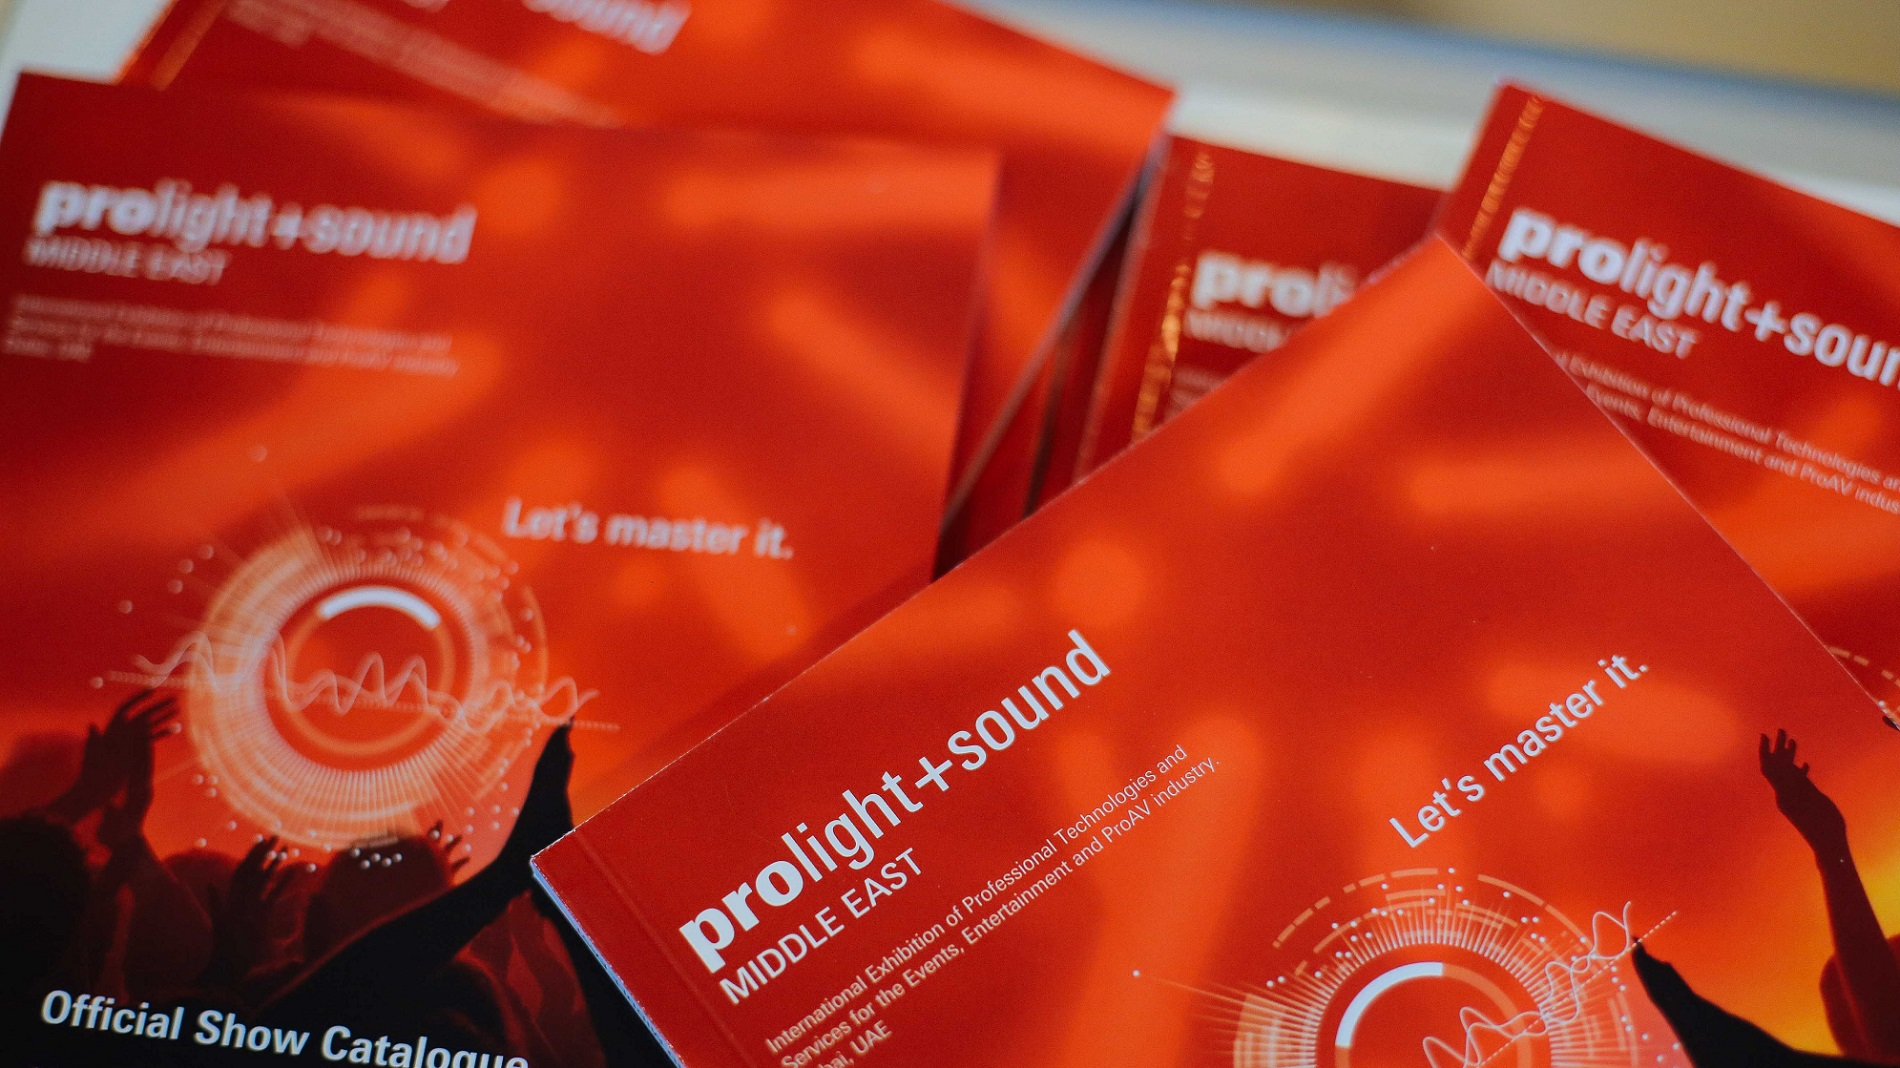 Publications Prolight + Sound Middle East